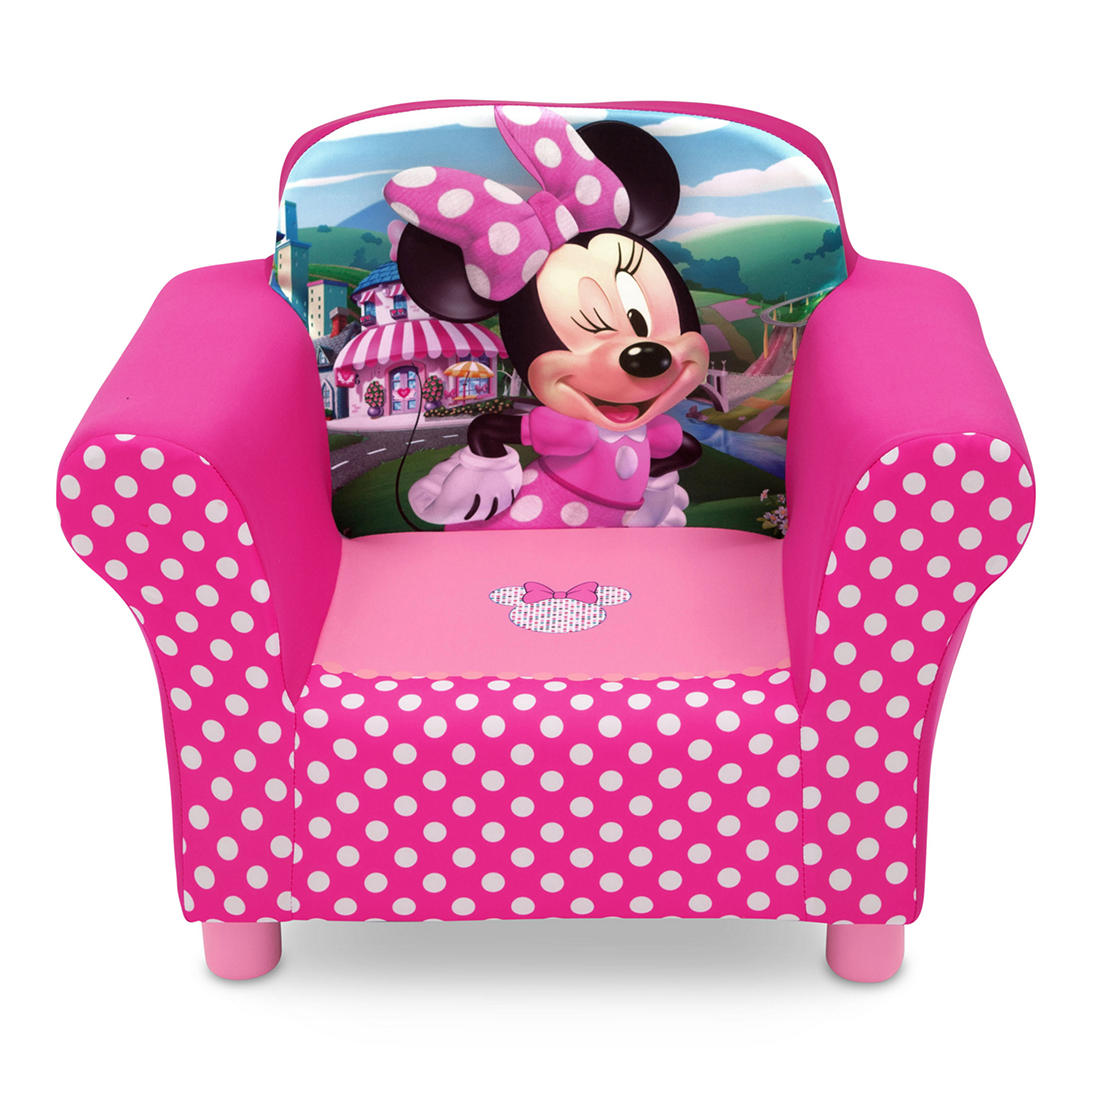 Outstanding Delta Children Disney Minnie Mouse Upholstered Toddler Chair Pdpeps Interior Chair Design Pdpepsorg